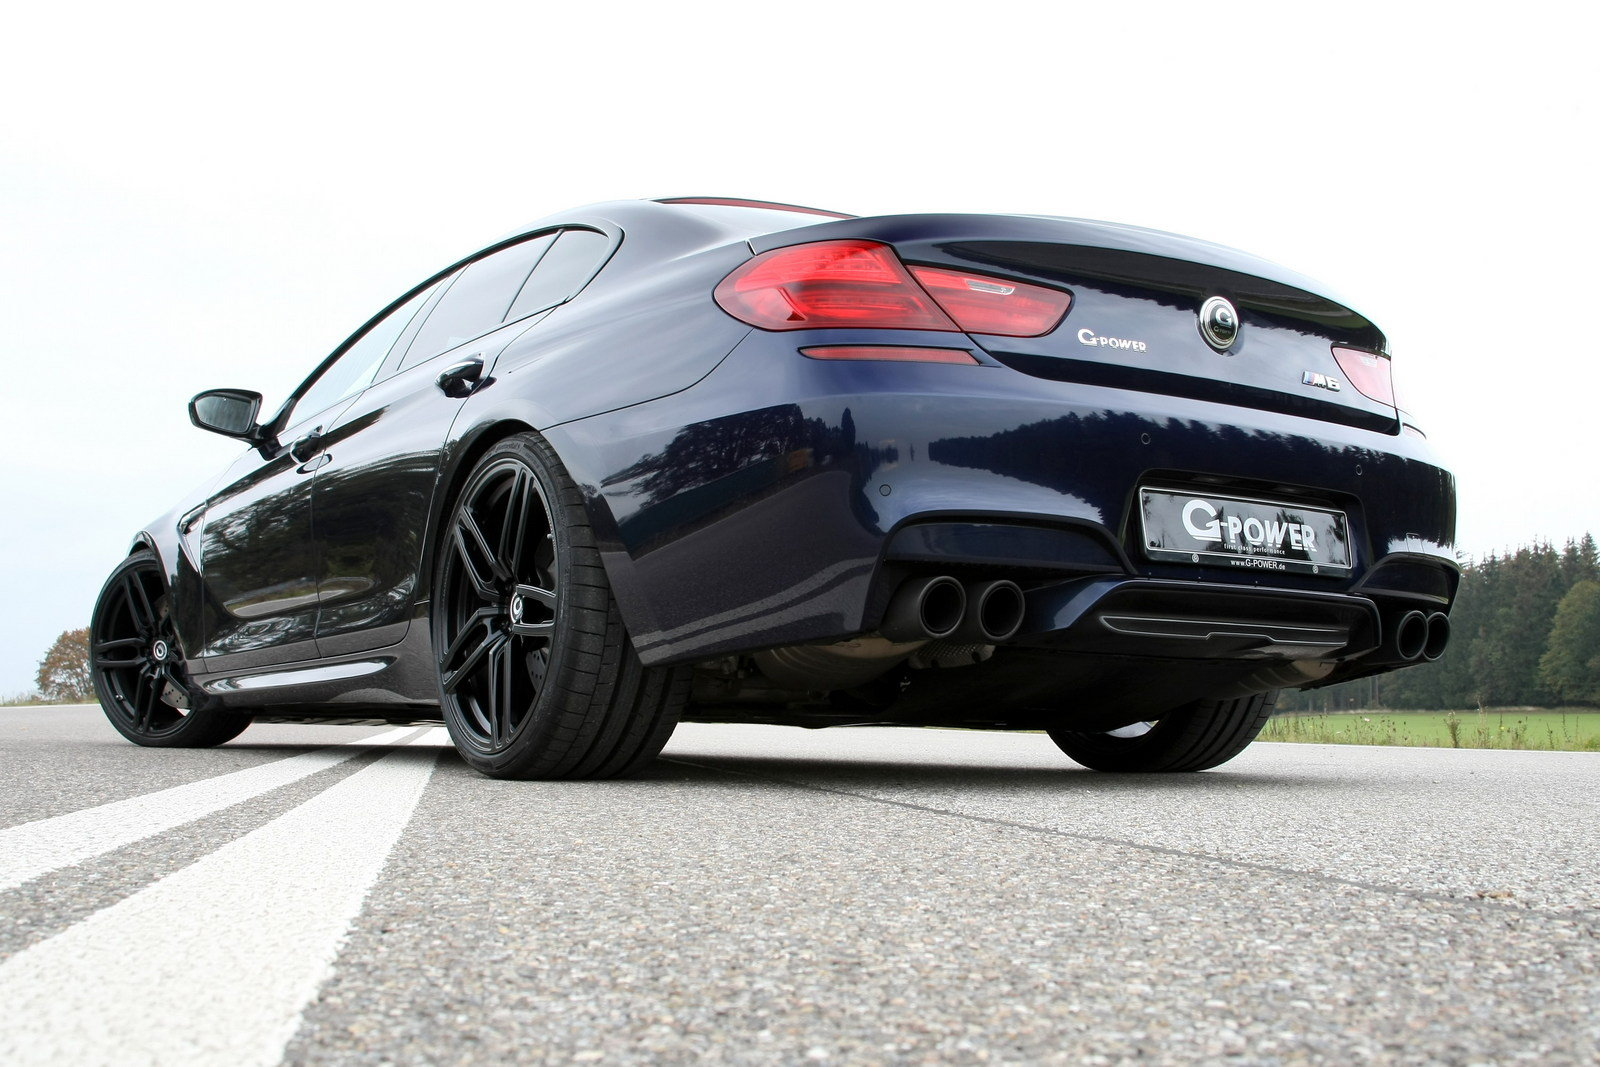 2016 bmw m6 gran coupe by g power picture 671582 car review top speed. Black Bedroom Furniture Sets. Home Design Ideas